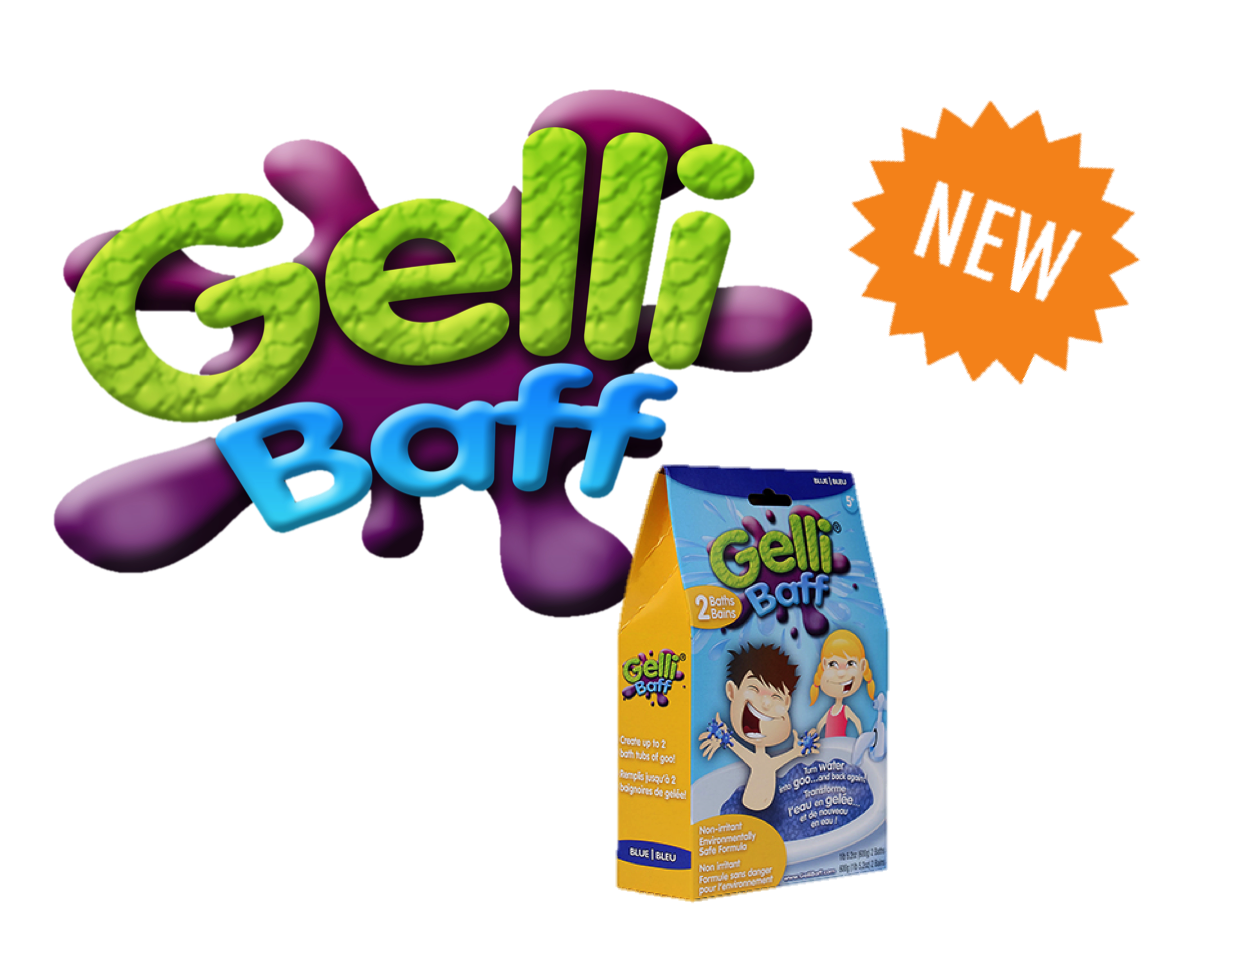 Gelli baff diy sweepstakes